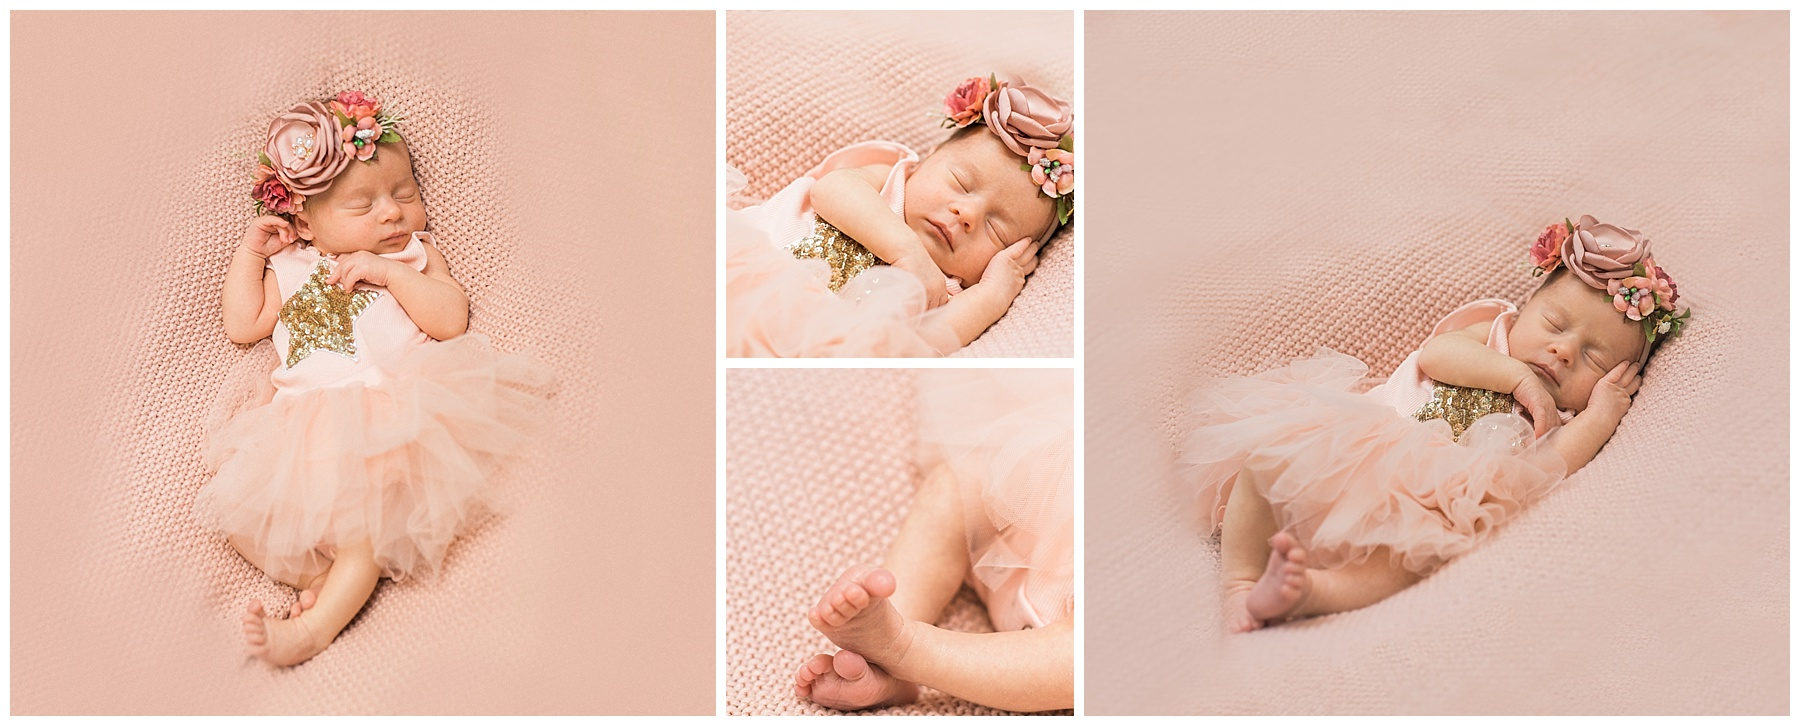 Newborn Photography, Wanderlove, Bucks County Photography, Bucks County Newborn Photographer